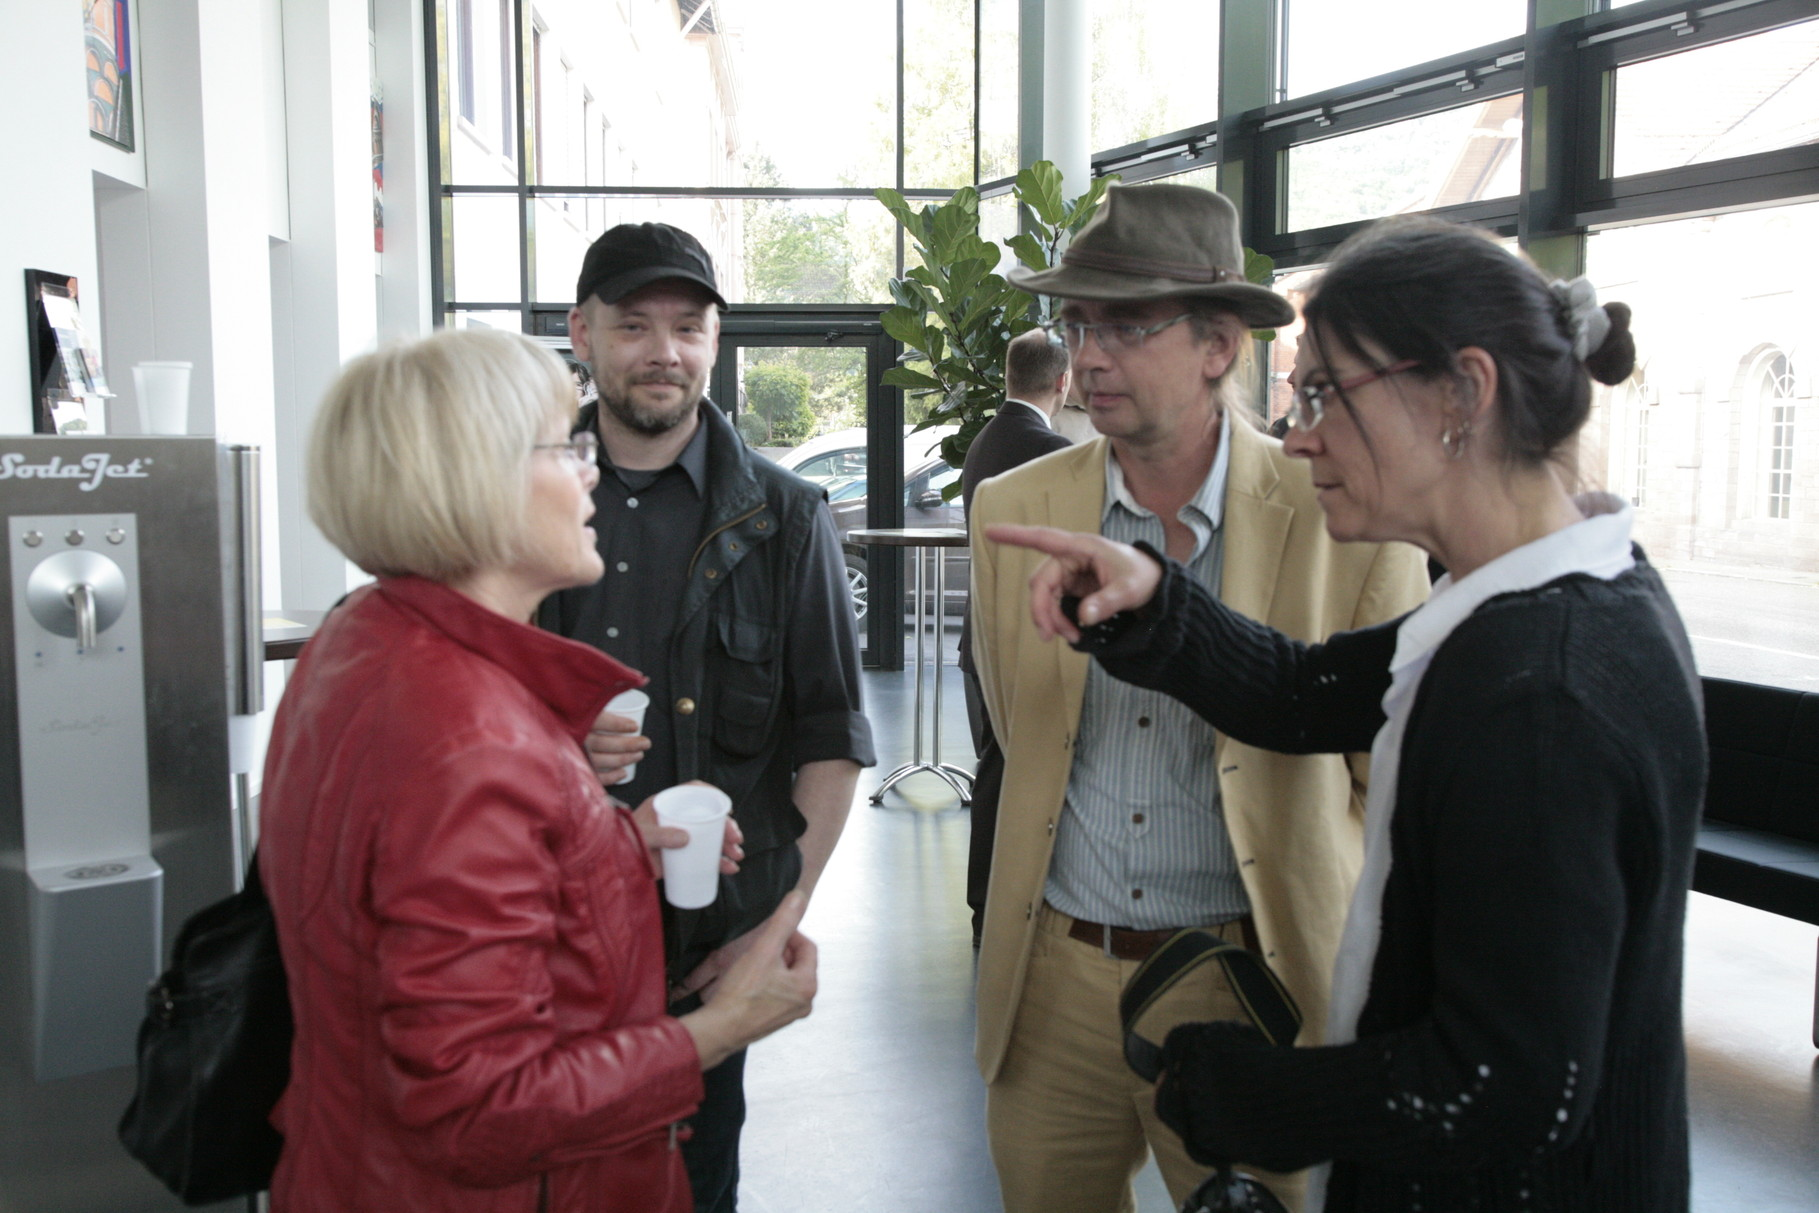 Impressionen der Vernissage am 08.05.2014